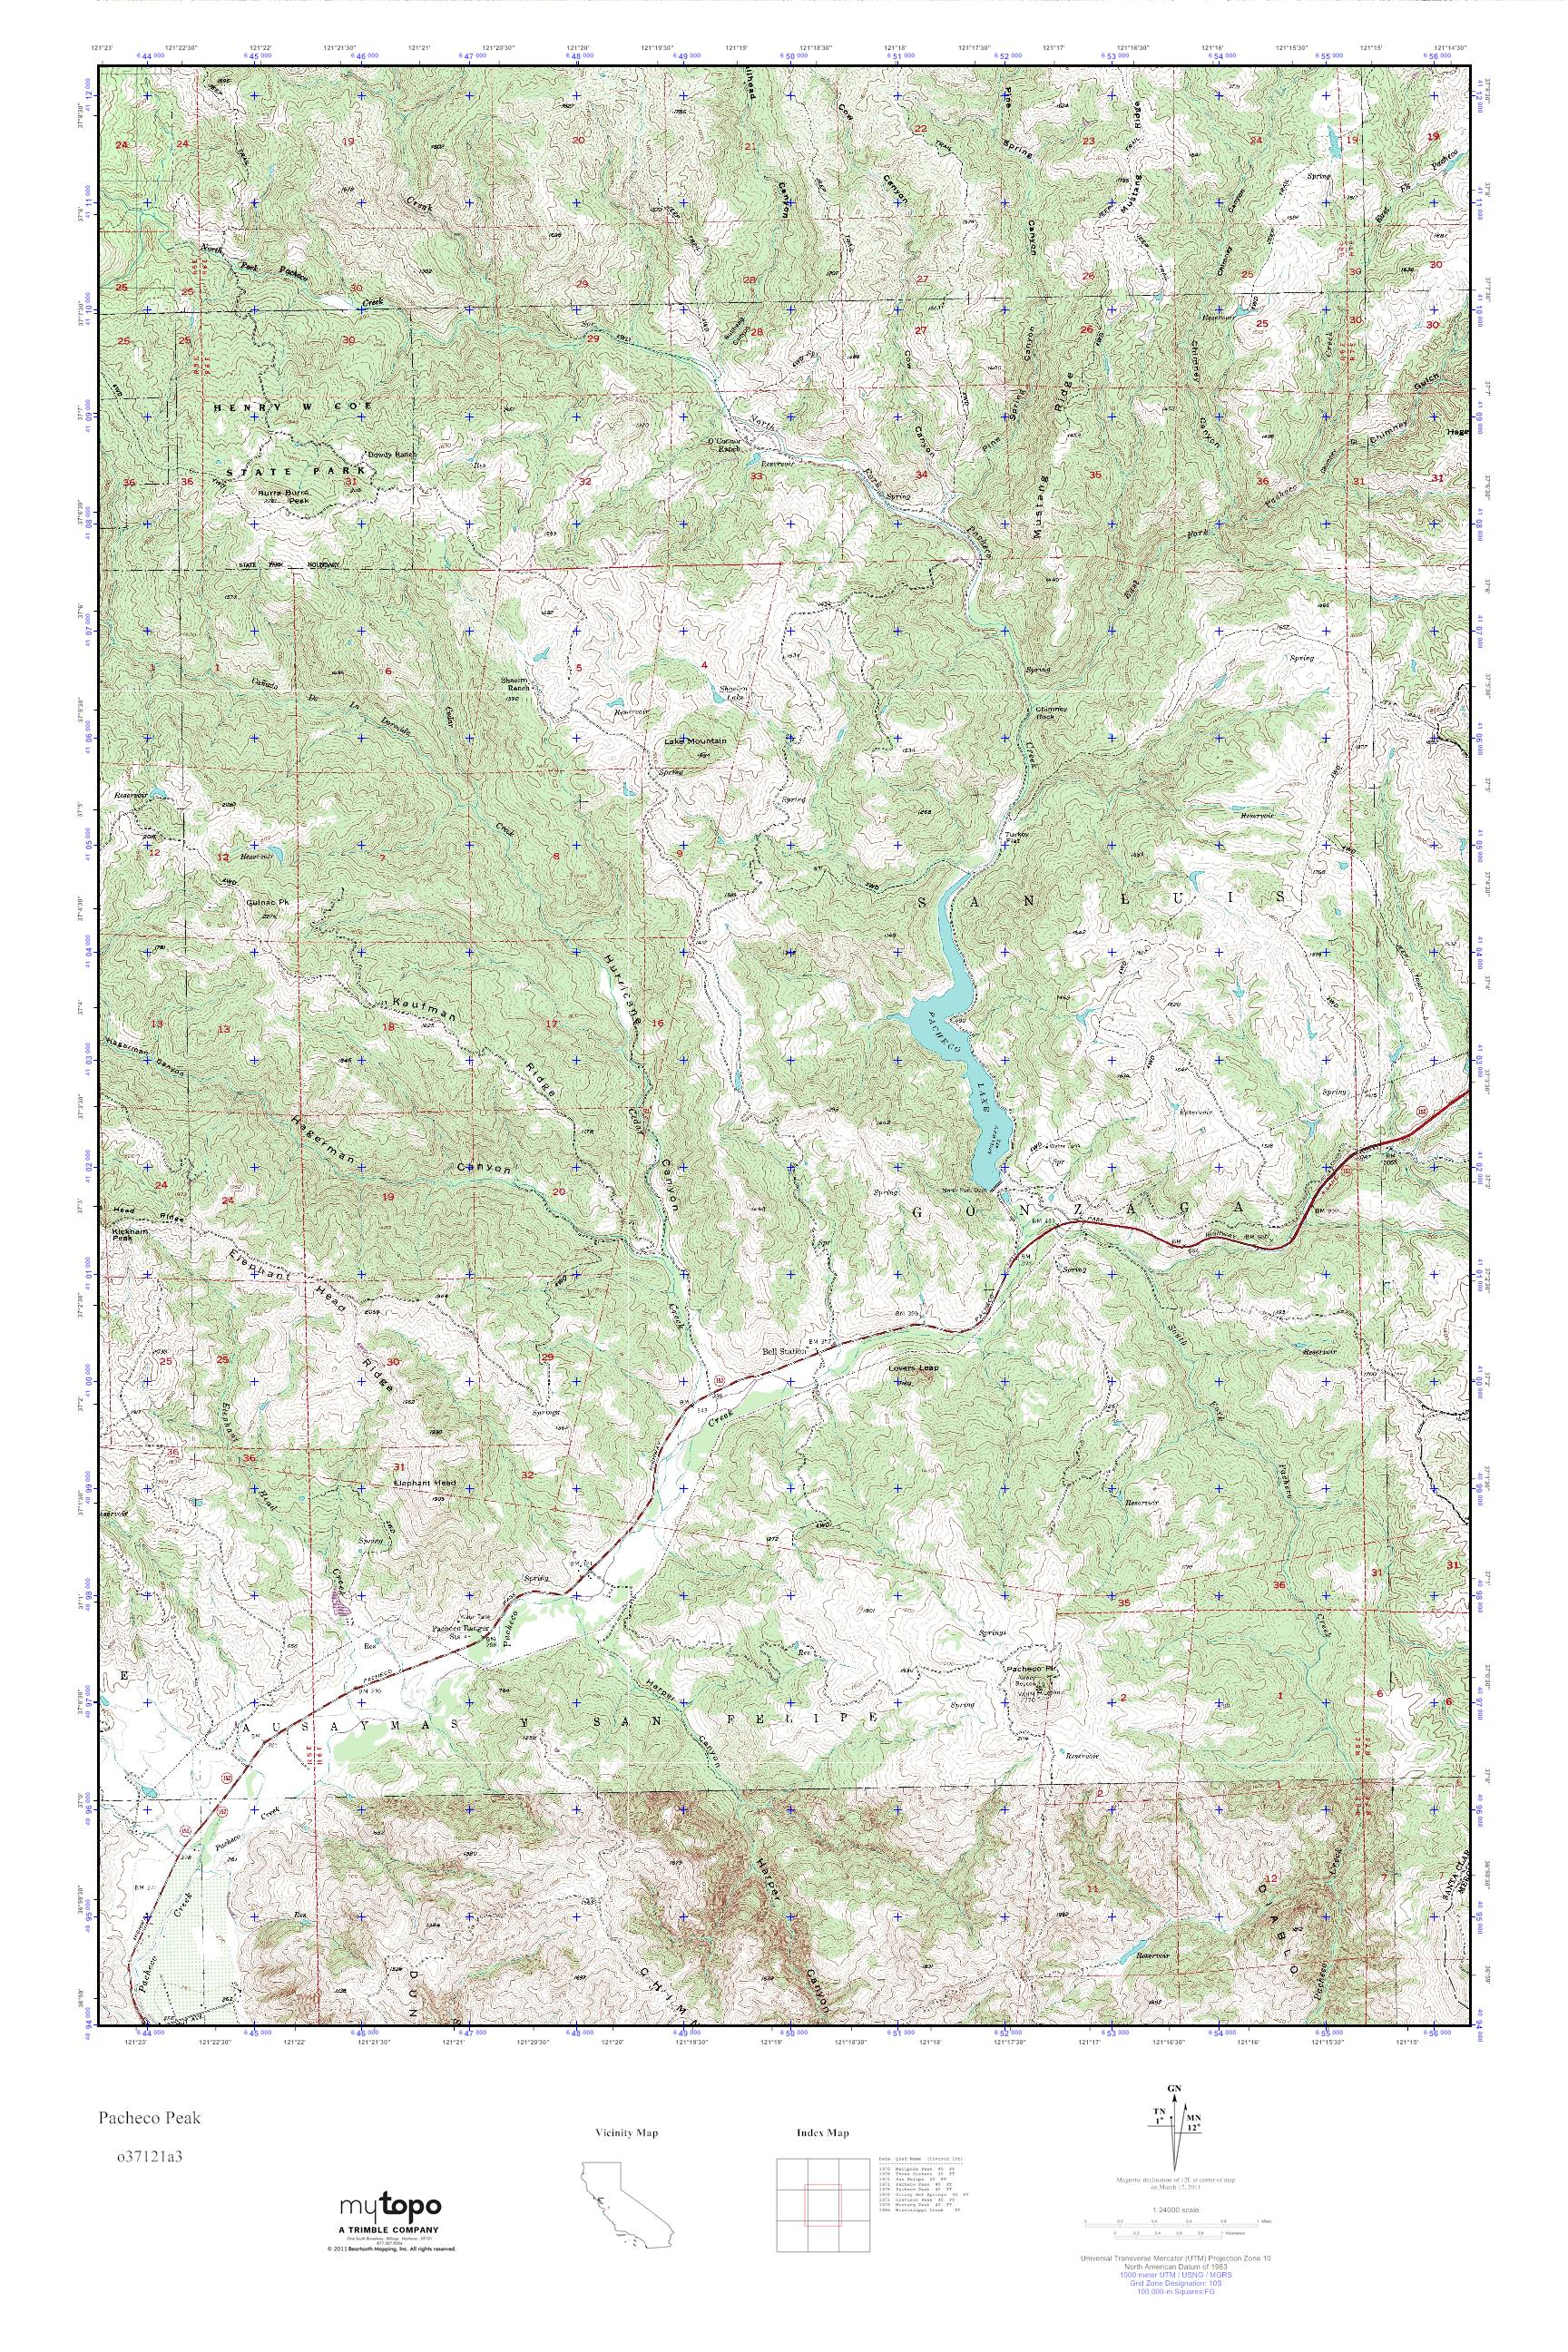 Pacheco California Map.Mytopo Pacheco Peak California Usgs Quad Topo Map